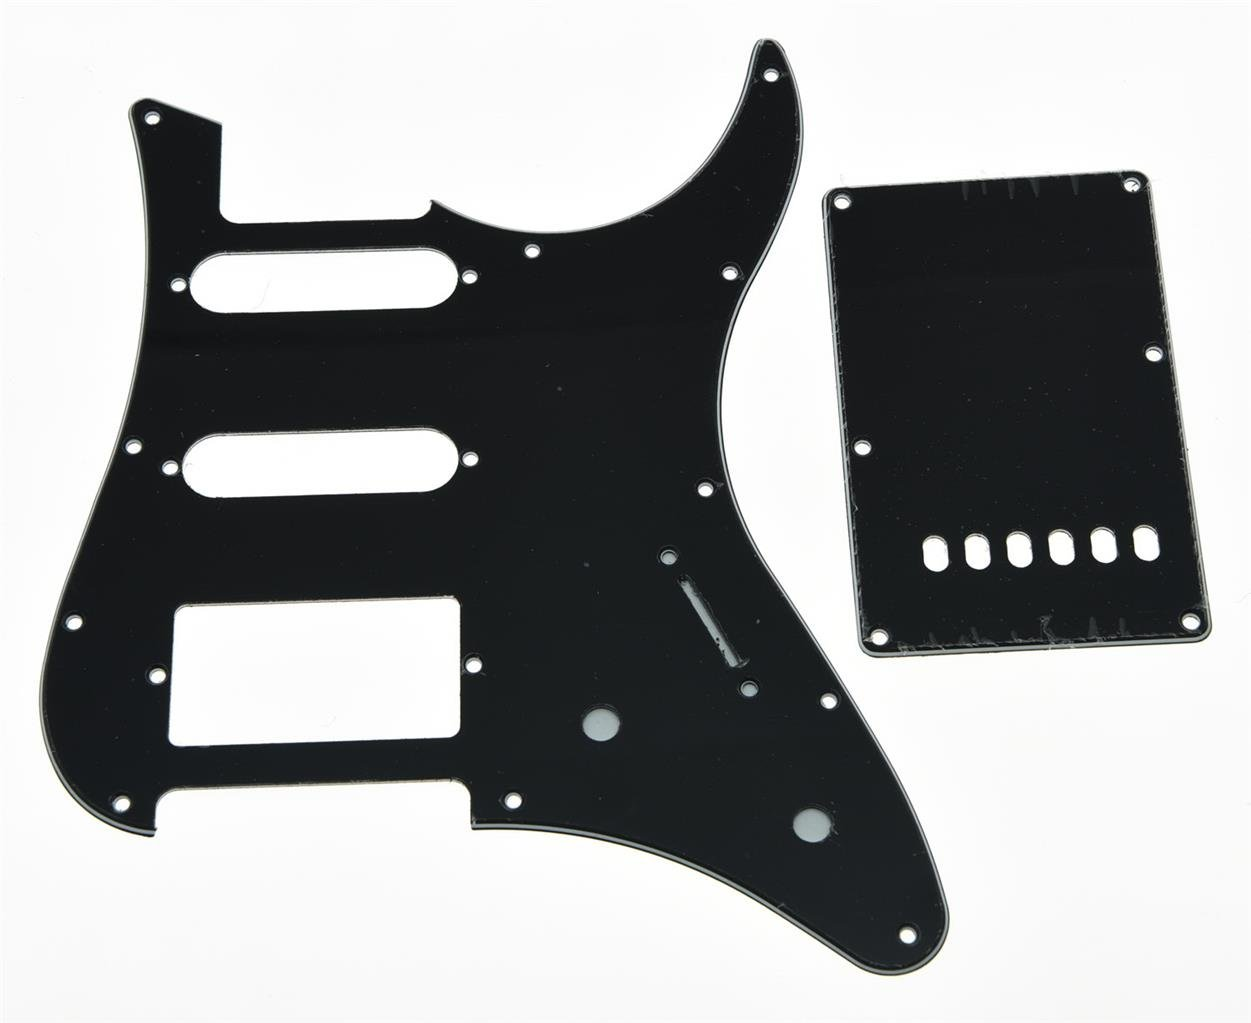 KAISH Guitar HSS Pickguard and Tremolo Trem Cover Back Plate fits Yamaha PACIFICA Guitar Black 3 Ply